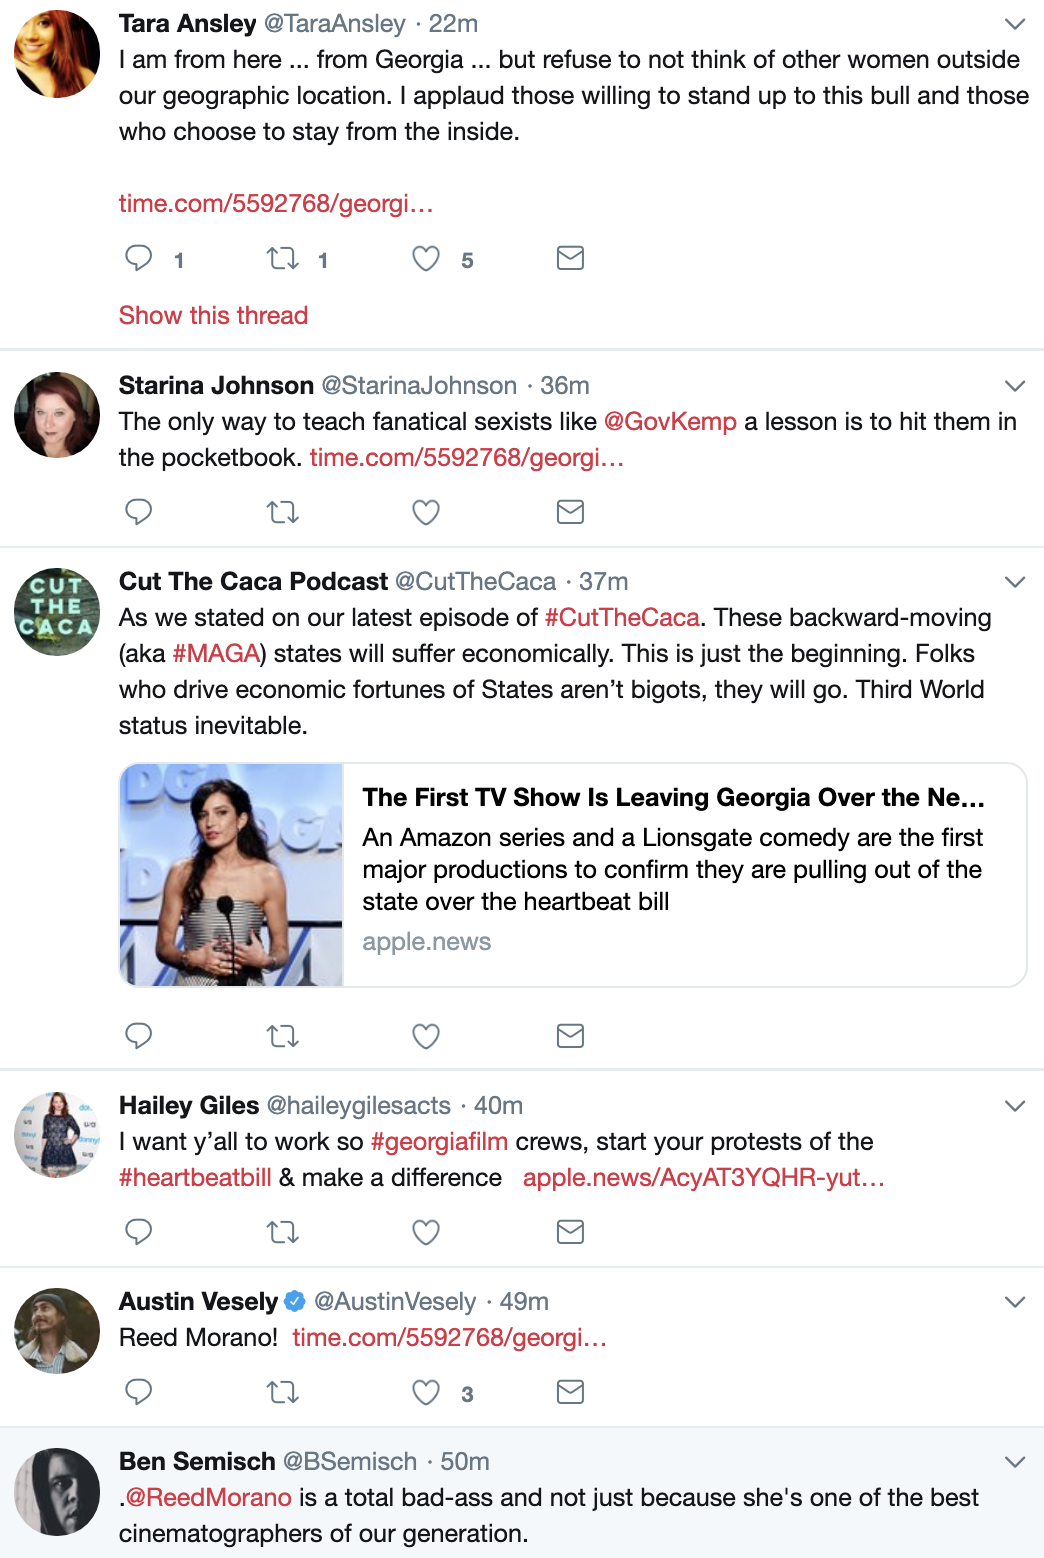 Screen-Shot-2019-05-21-at-3.04.44-PM California Creates Law To Stop Movie Production In Abortion Ban States Abortion Corruption Crime Domestic Policy Donald Trump Feminism Me Too Politics Top Stories